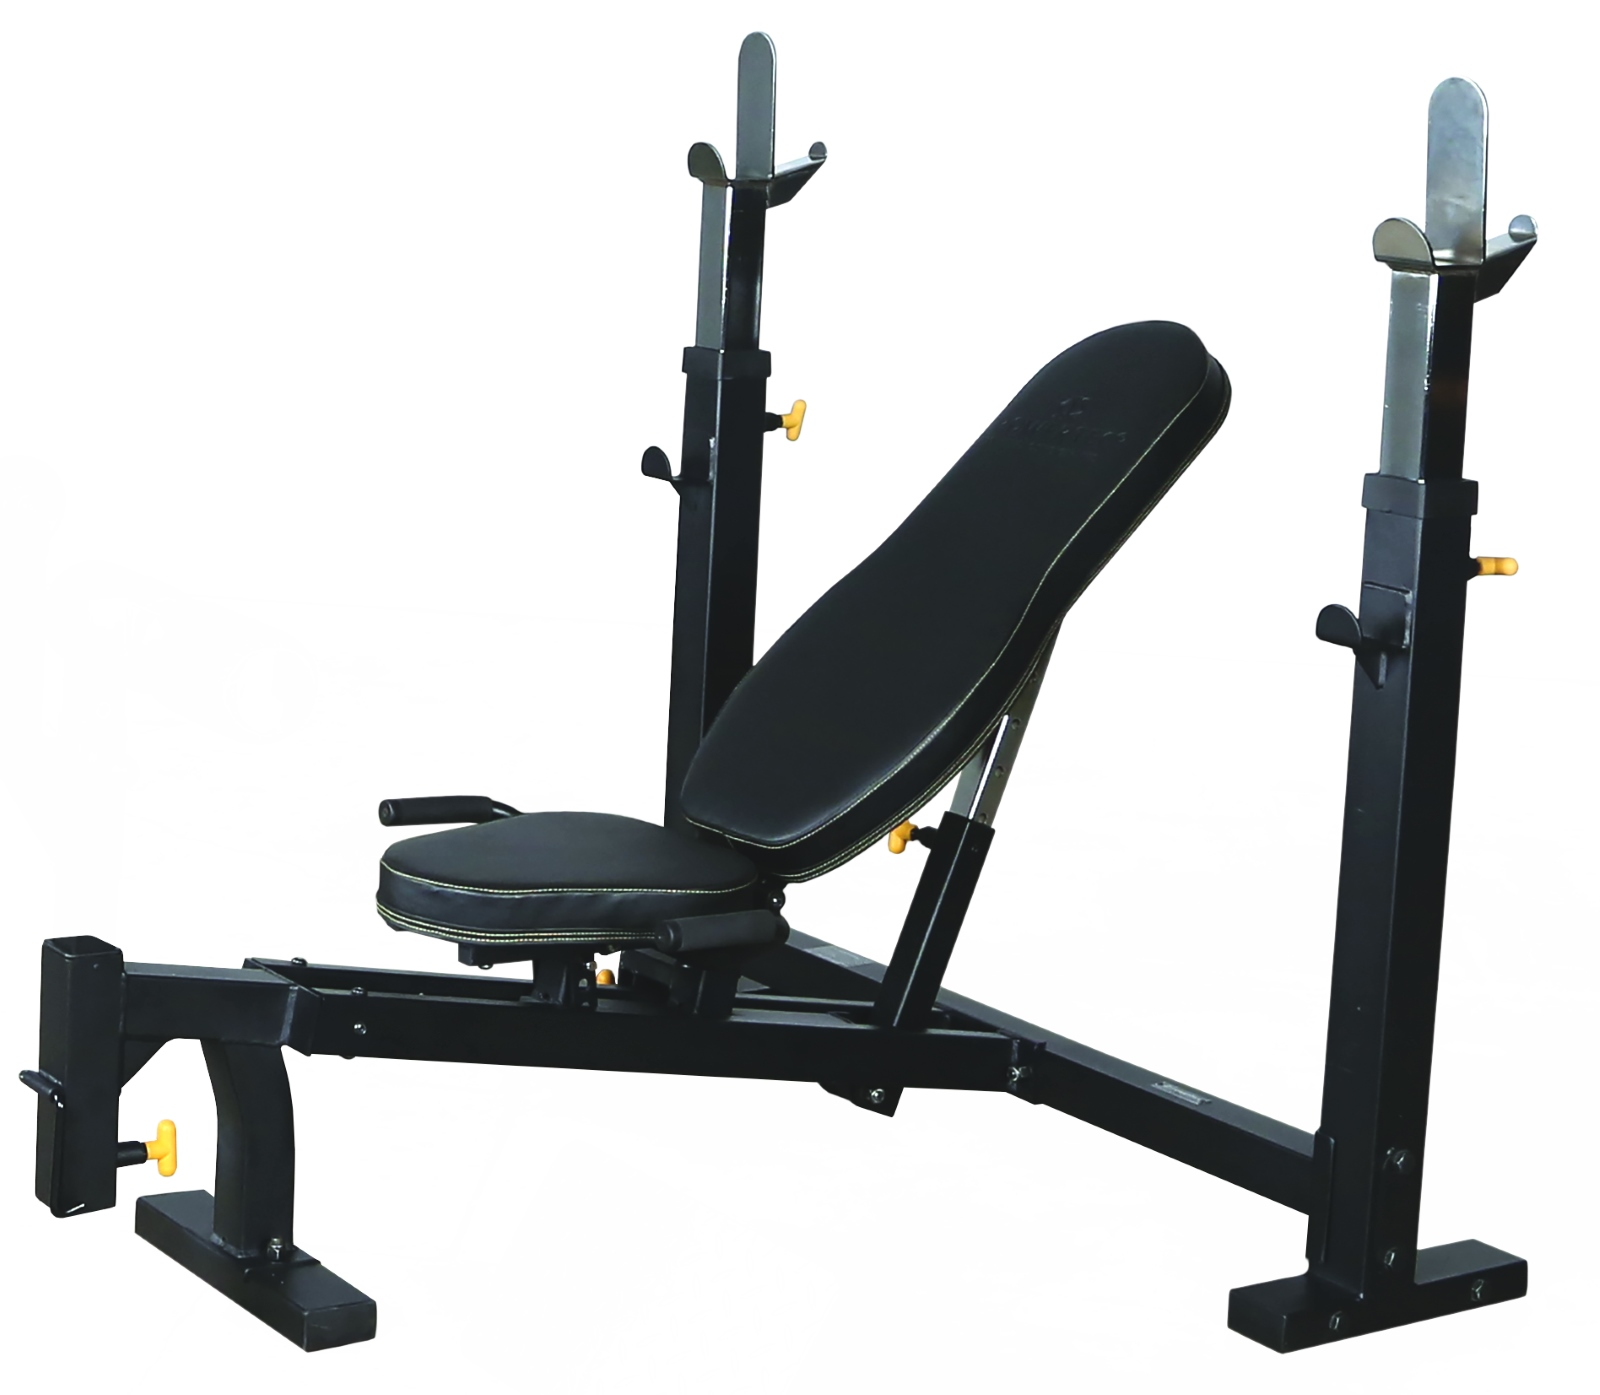 POWERTEC Olympic Bench Press WB-OB16 Home Gym Weights Fitness